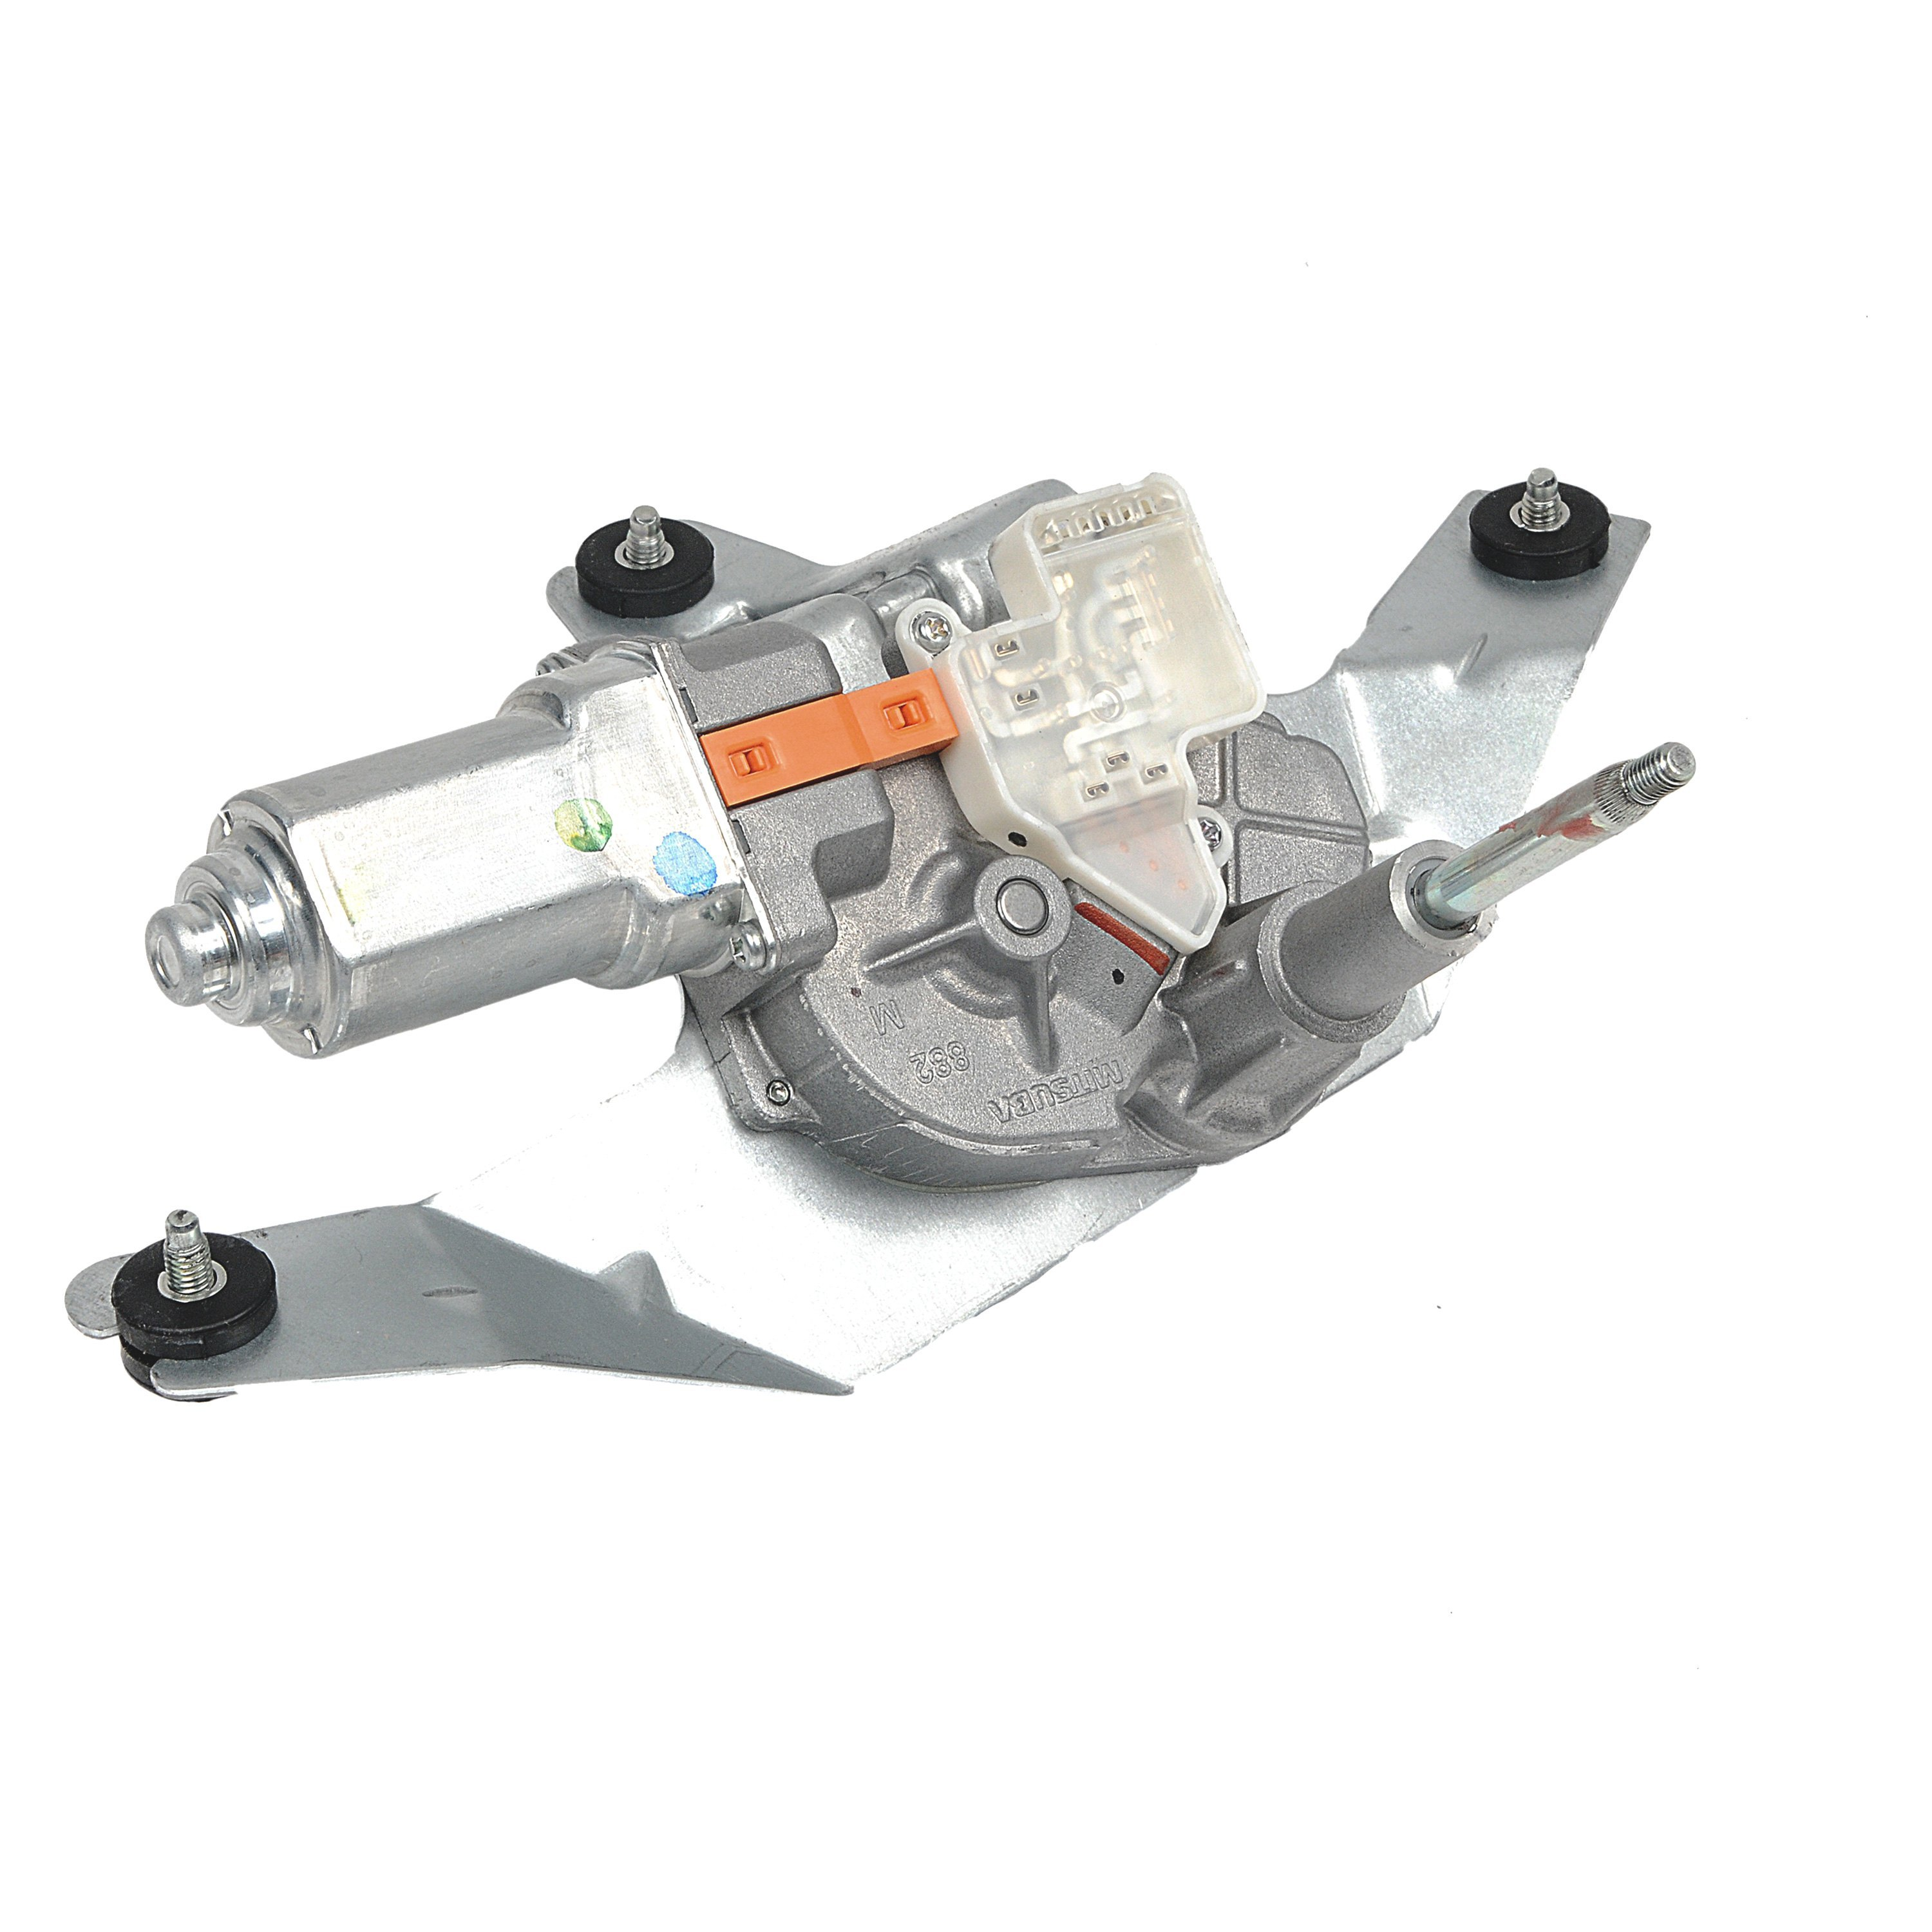 Windshield Replacement Near Me >> Cost To Replace Windshield Wiper Motor - impremedia.net